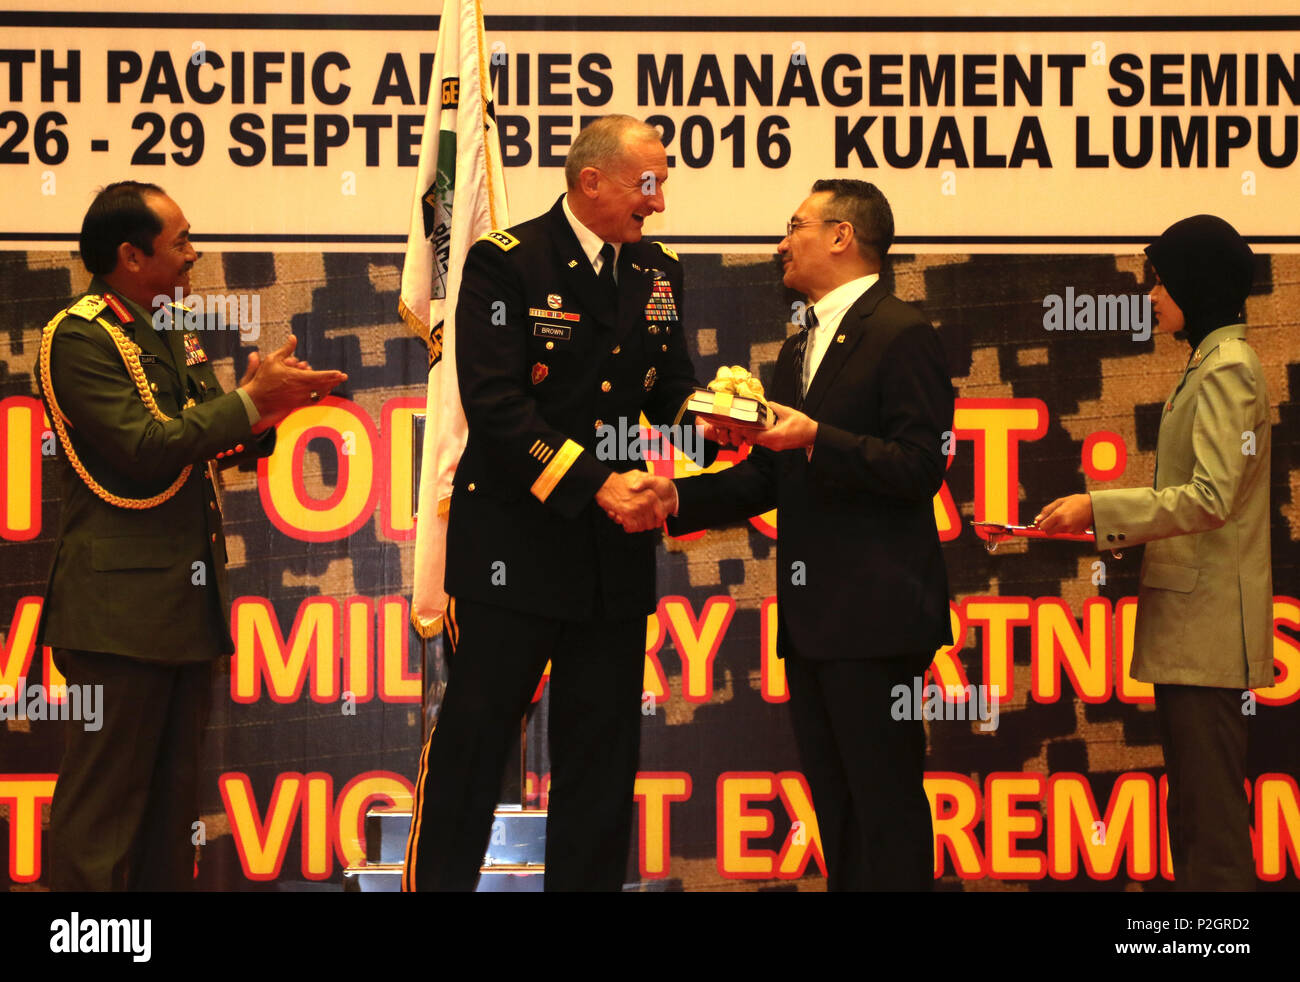 "U.S. Army Gen. Robert B. Brown, Commander, U.S. Army Pacific and Lt. Gen. Dato' Sri Zulkiple, Field Commander West, Malaysian Army present a memento to the Honorable Dato' Seri Hishmuddin, Minister of Defence Malaysia during the opening ceremony for PAMS 2016, in Kuala Lumpur, Malaysia, September 26. PAMS is an annual multinational military seminar providing a forum for senior level ground force officers from regional ground forces and security forces to meet, exchange views and discuss professional military subjects. This year's theme is ""Unity of Effort: Building Civil-Military Partnerships  Stock Photo"